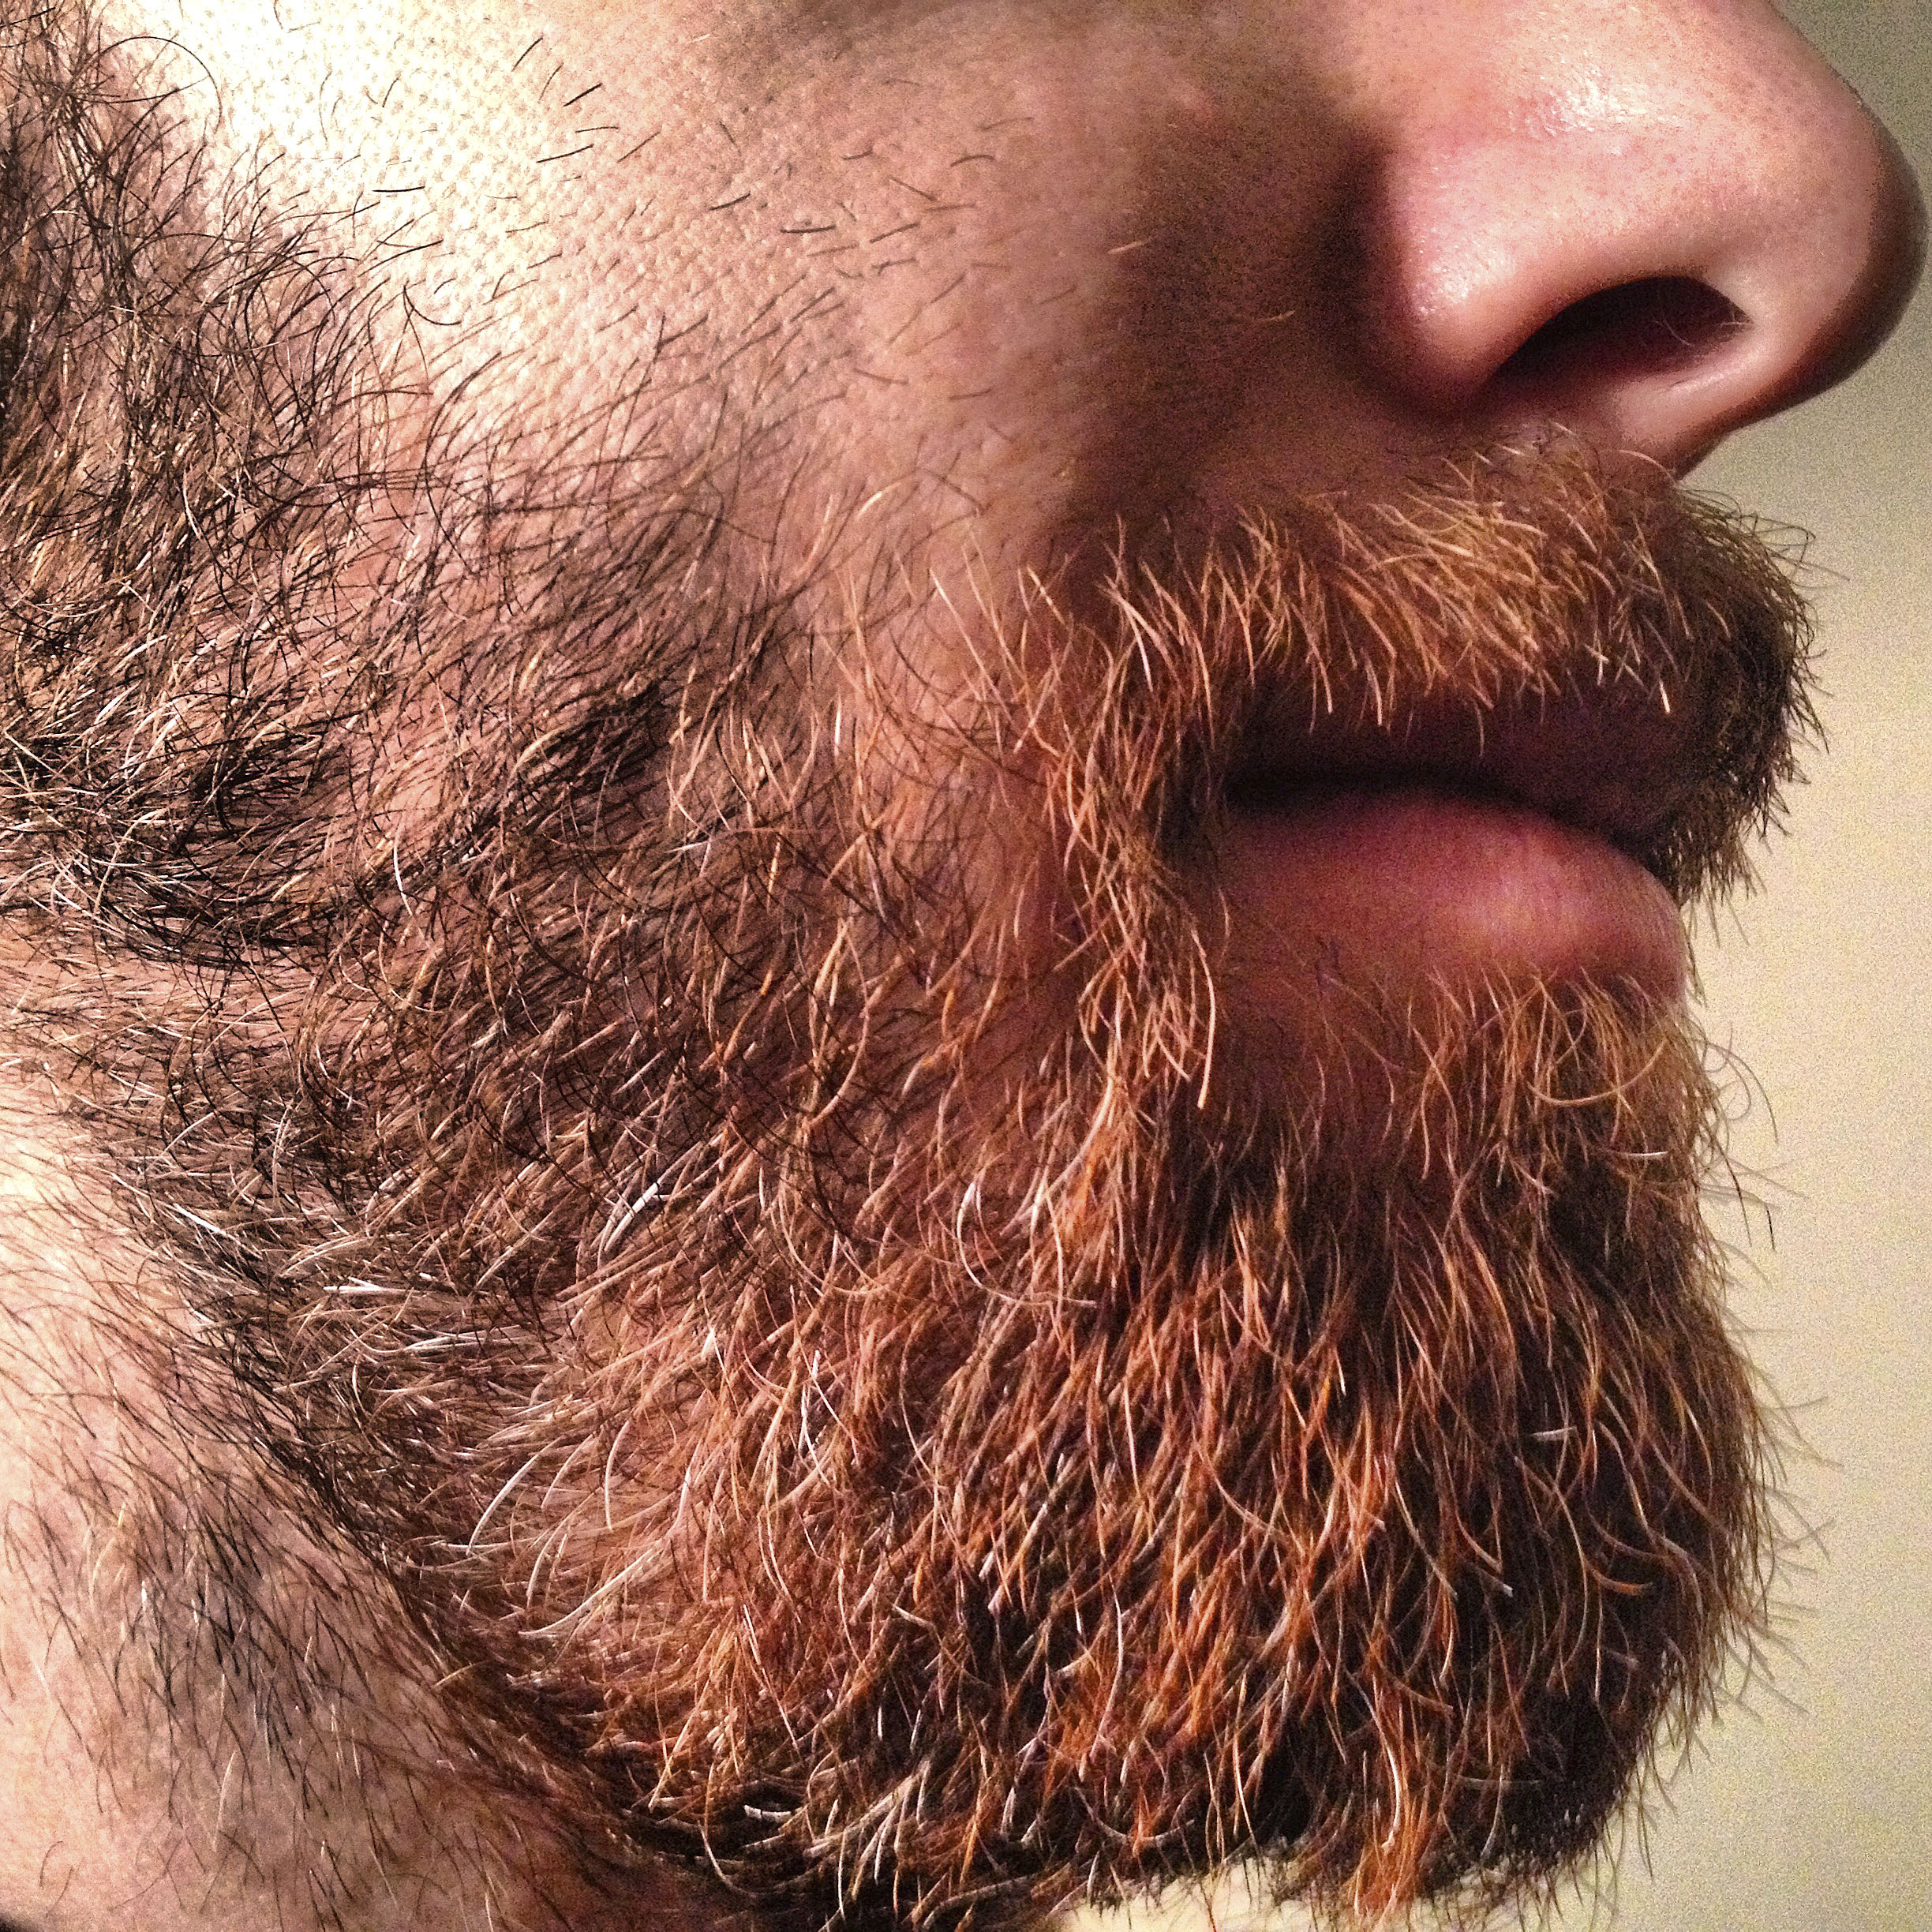 Microbiologist's tests show beards are full of fecal bacteria